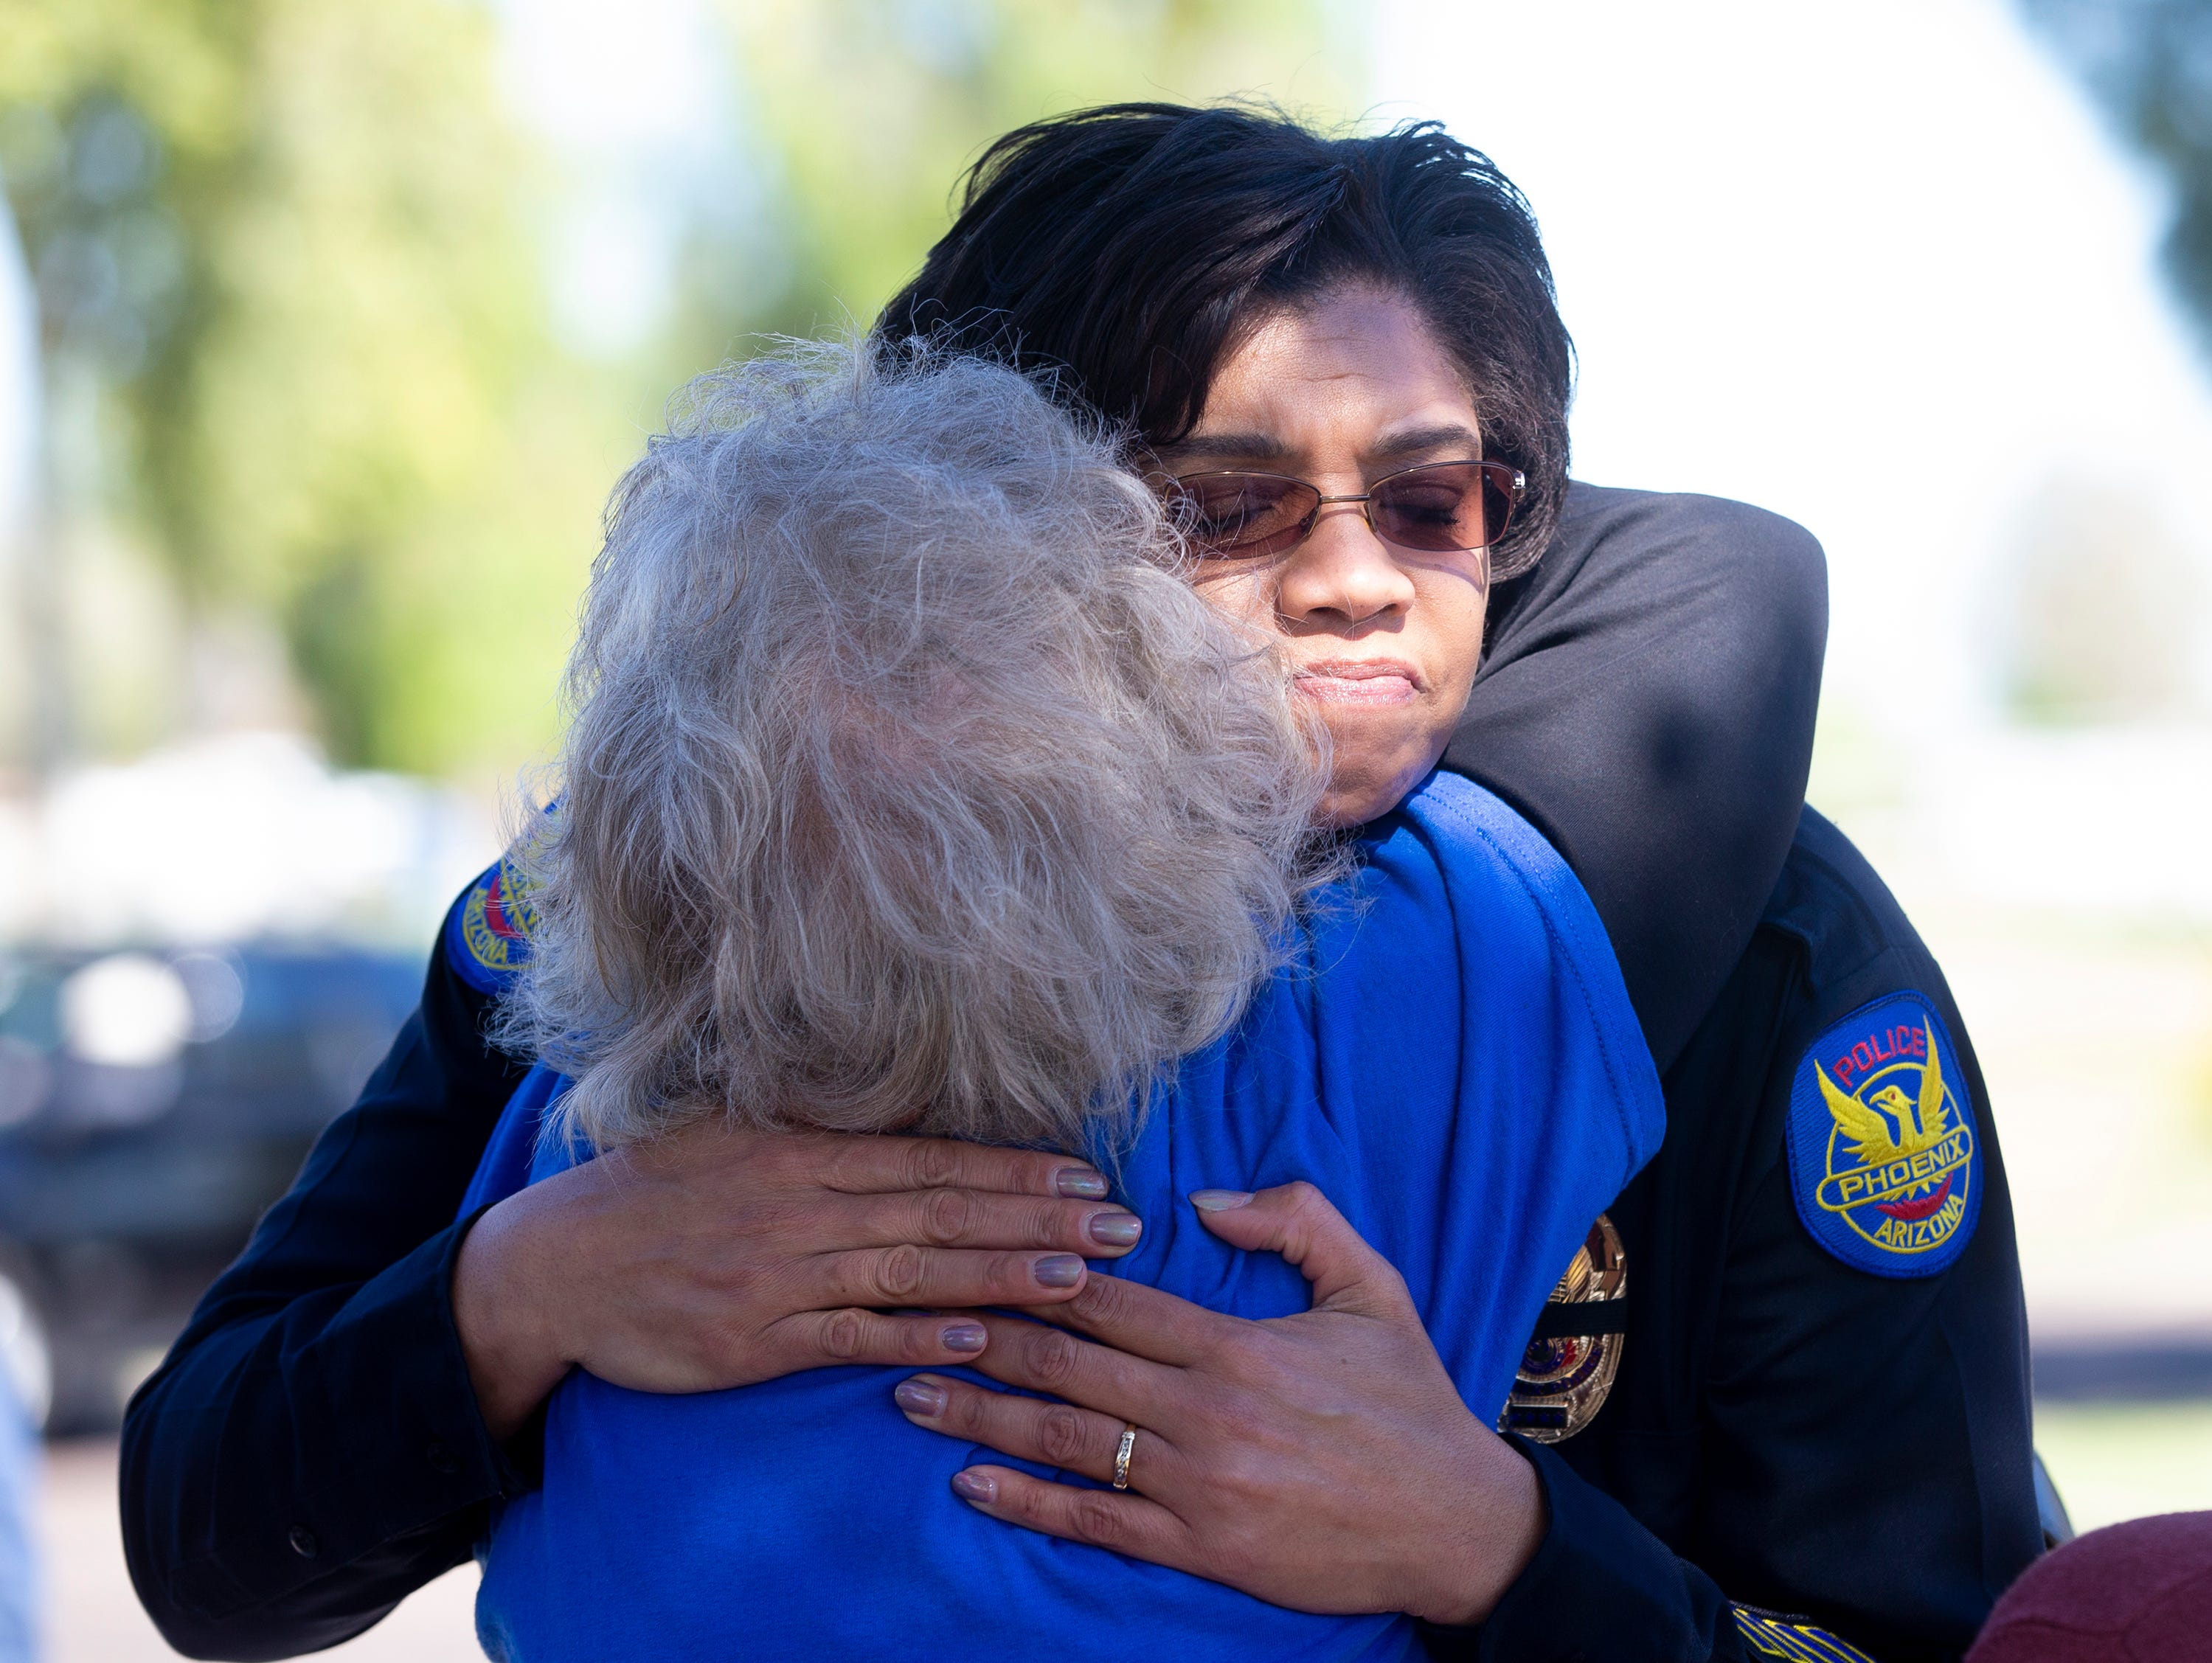 Phoenix Police Chief Jeri Williams gets a hug from Carol Hobbs March 22, 2019, before a prayer service outside Phoenix Police Maryvale Precinct for Officer Paul Rutherford, who was killed in a crash March 21.